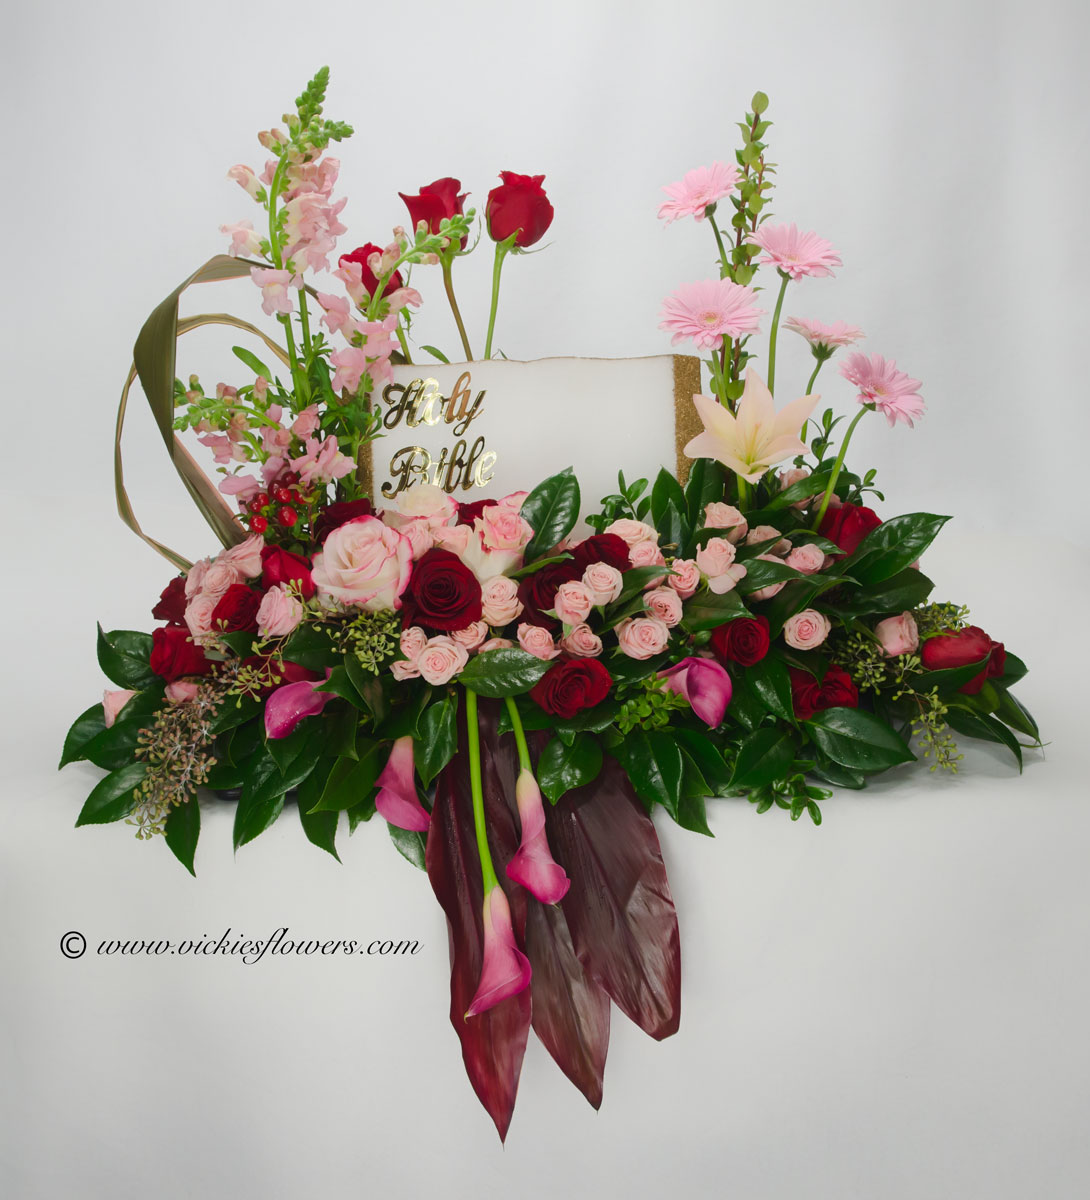 Contemporary Most Beautiful Funeral Flowers Illustration Best